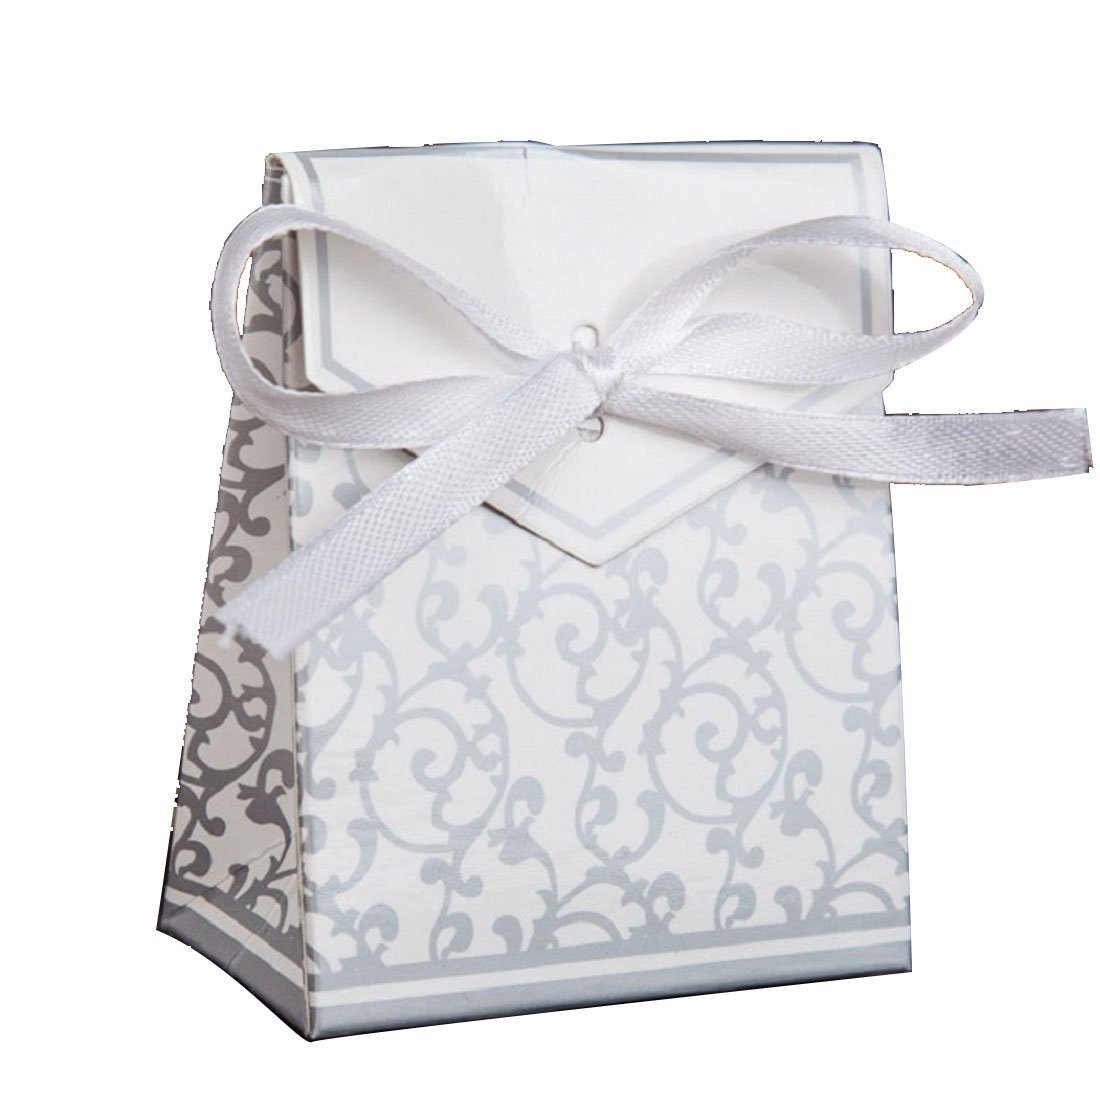 Cheap Wedding Favour Cake Boxes Find Wedding Favour Cake Boxes